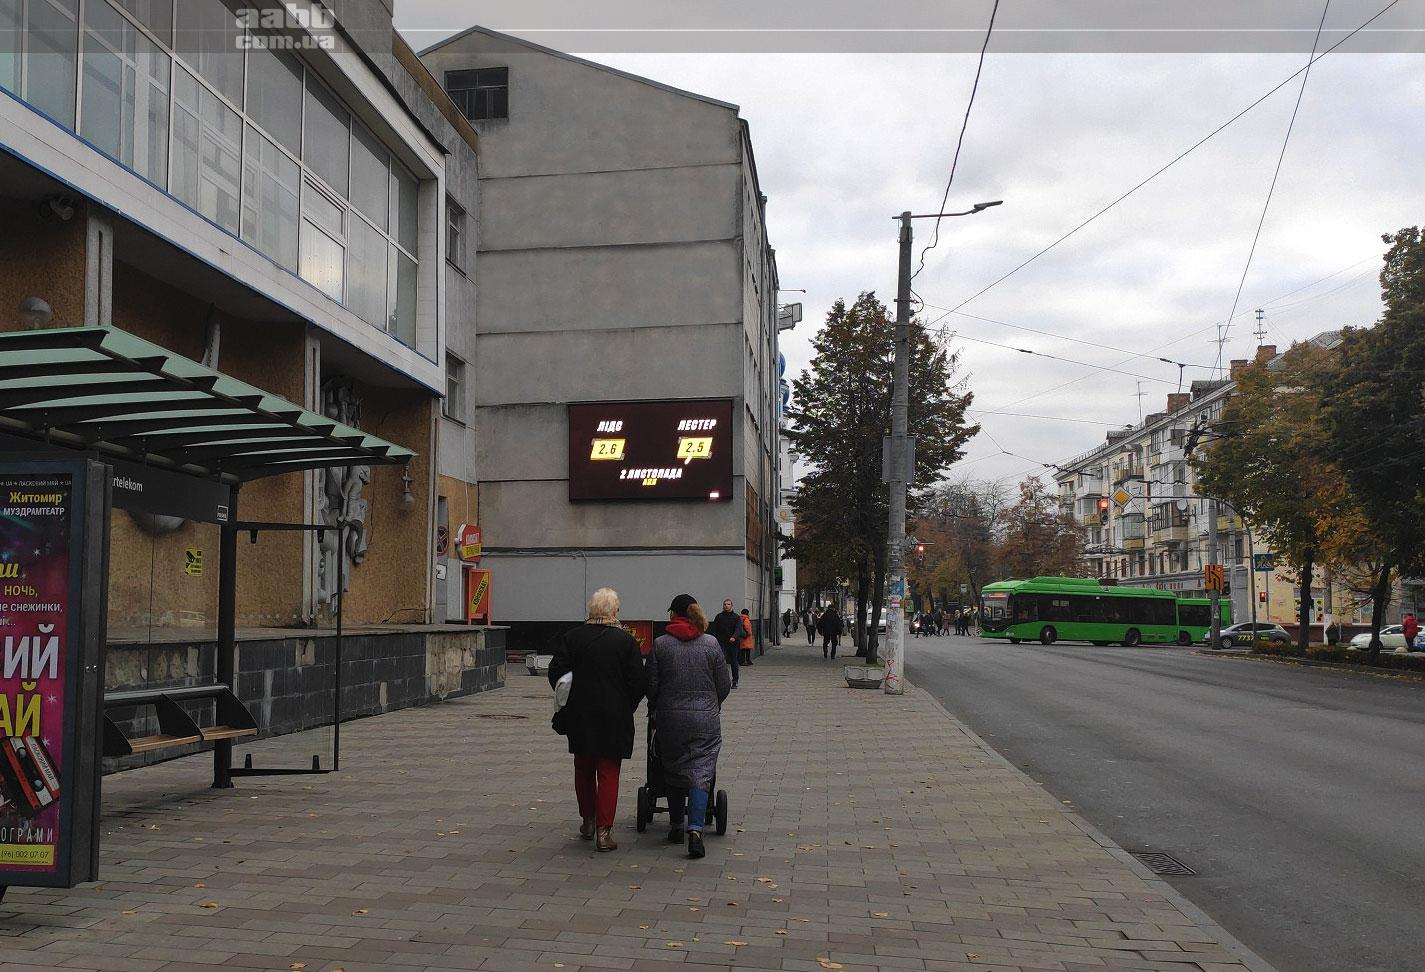 Advertising on video screens in Zhytomyr (November 2020)